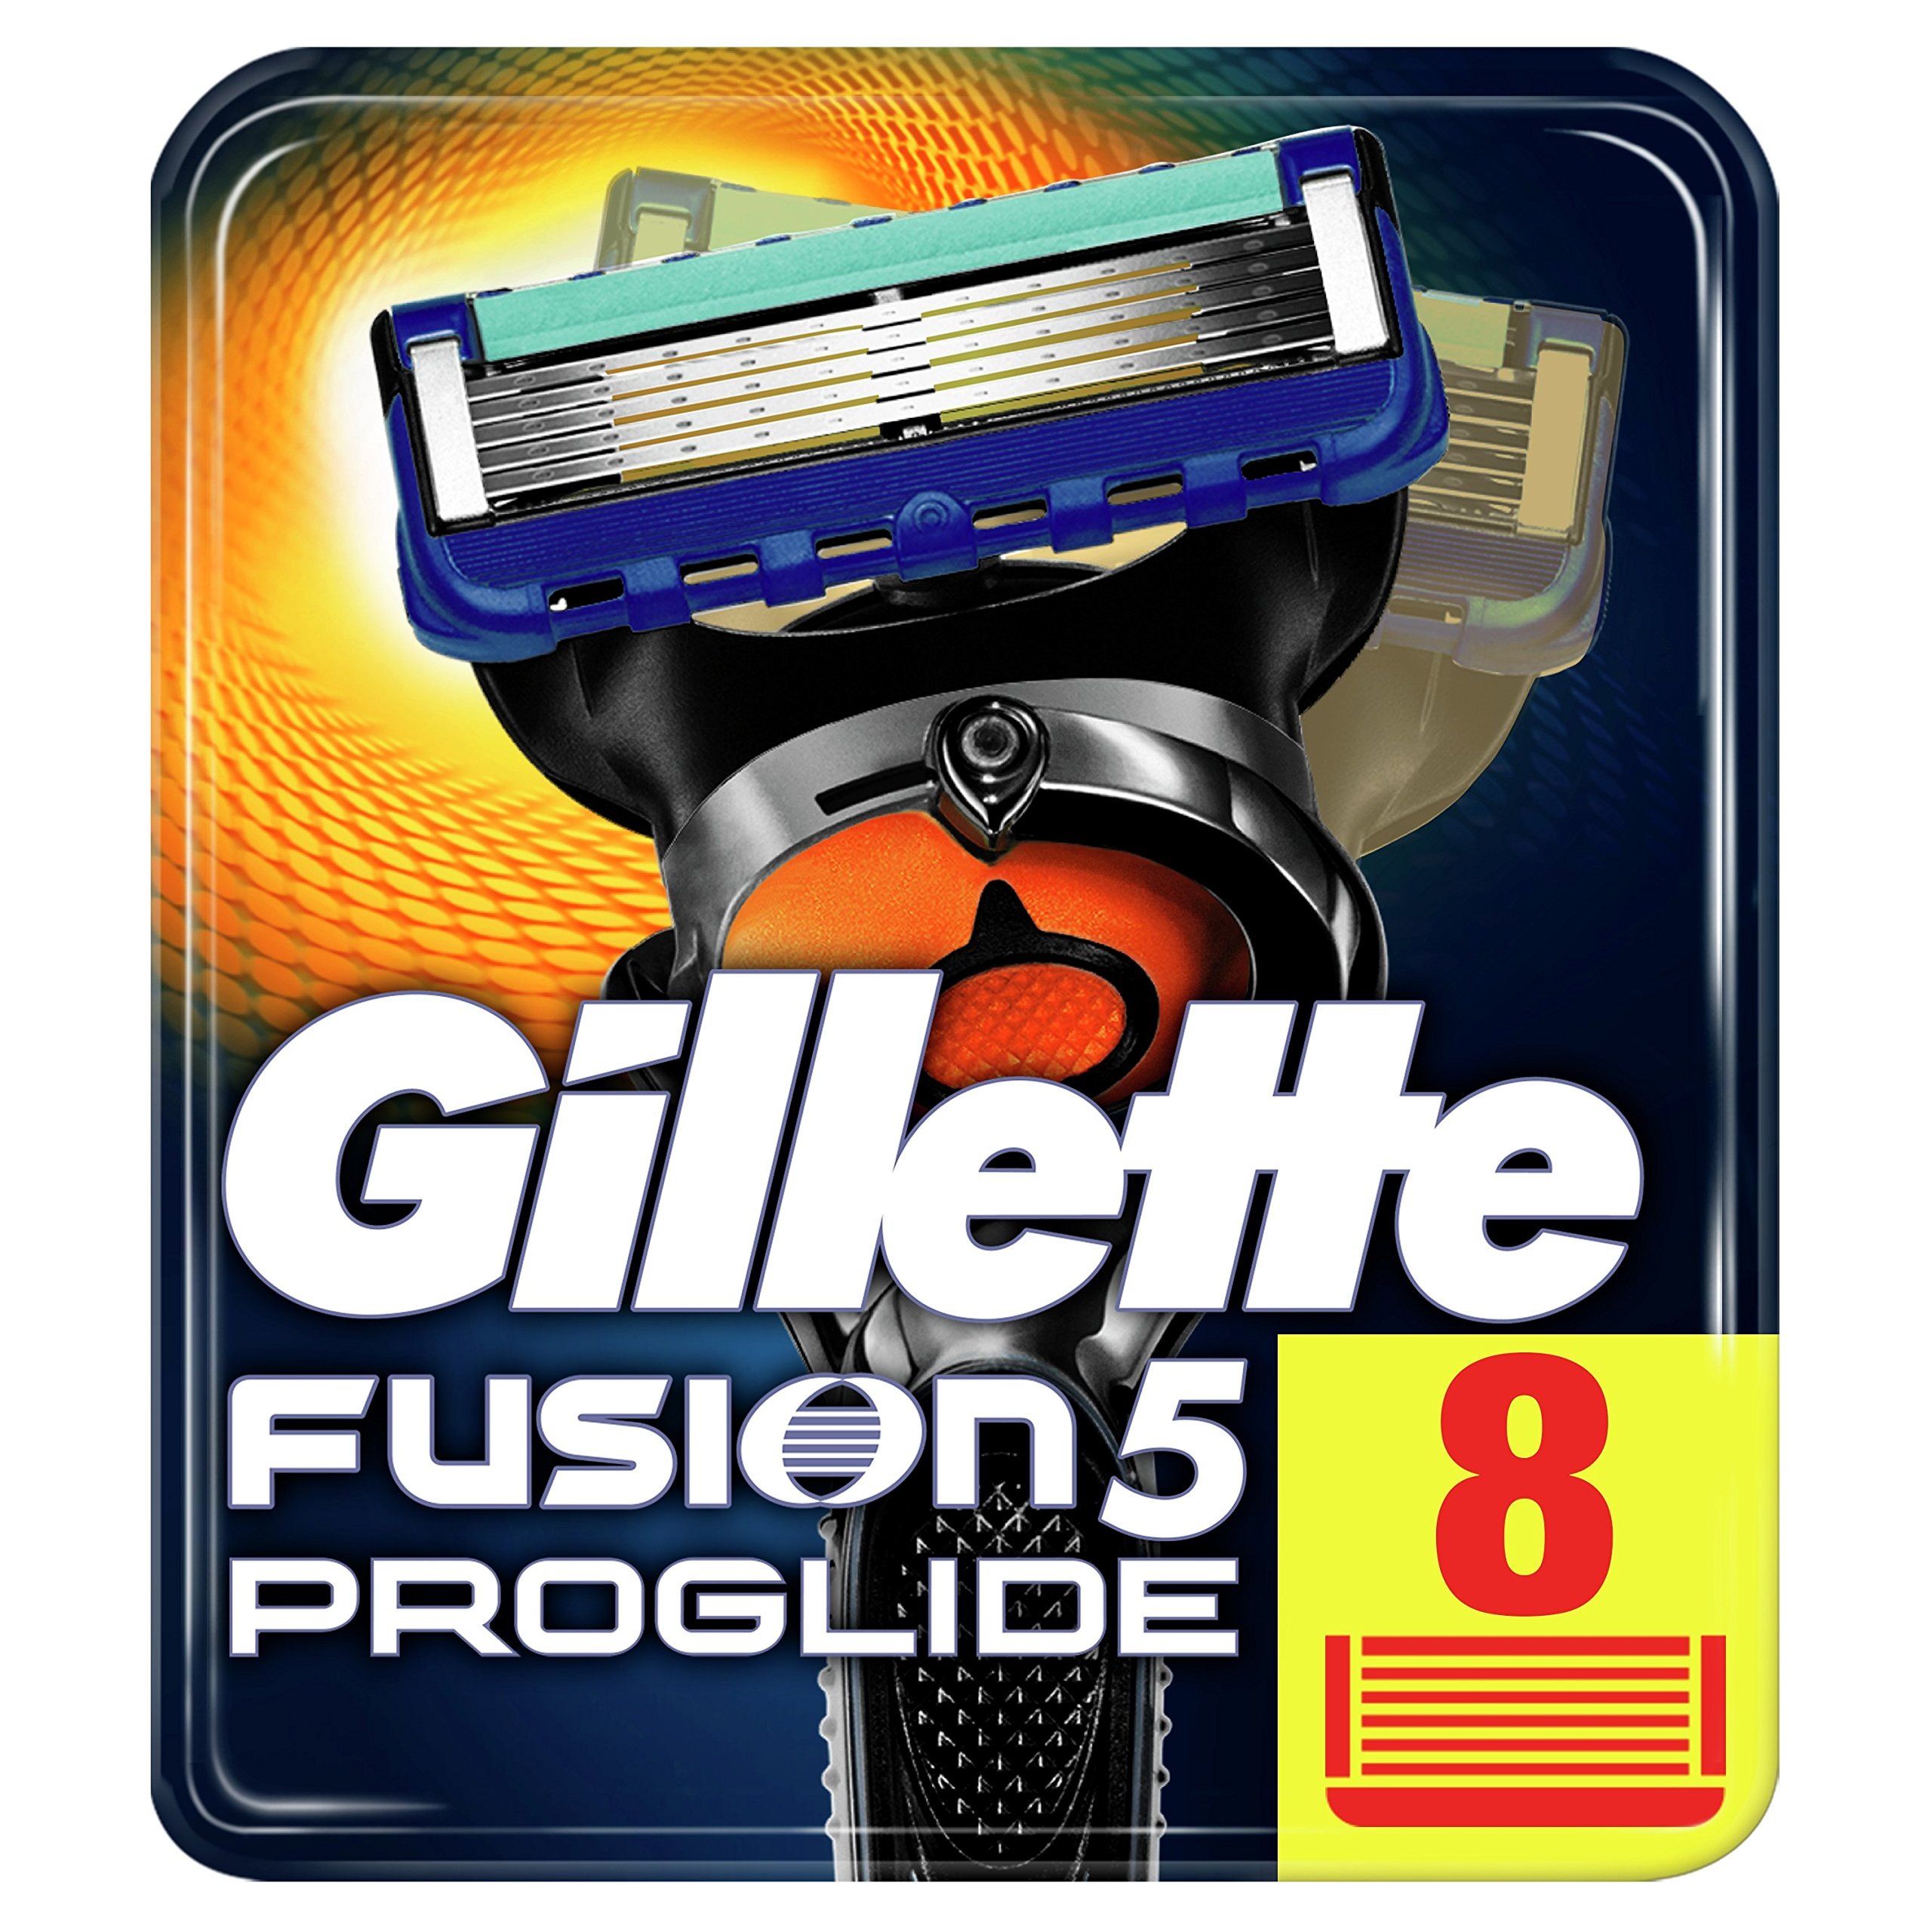 Gillette Fusion5 ProGlide Razor Blades for Men (Packaging May Vary) product image